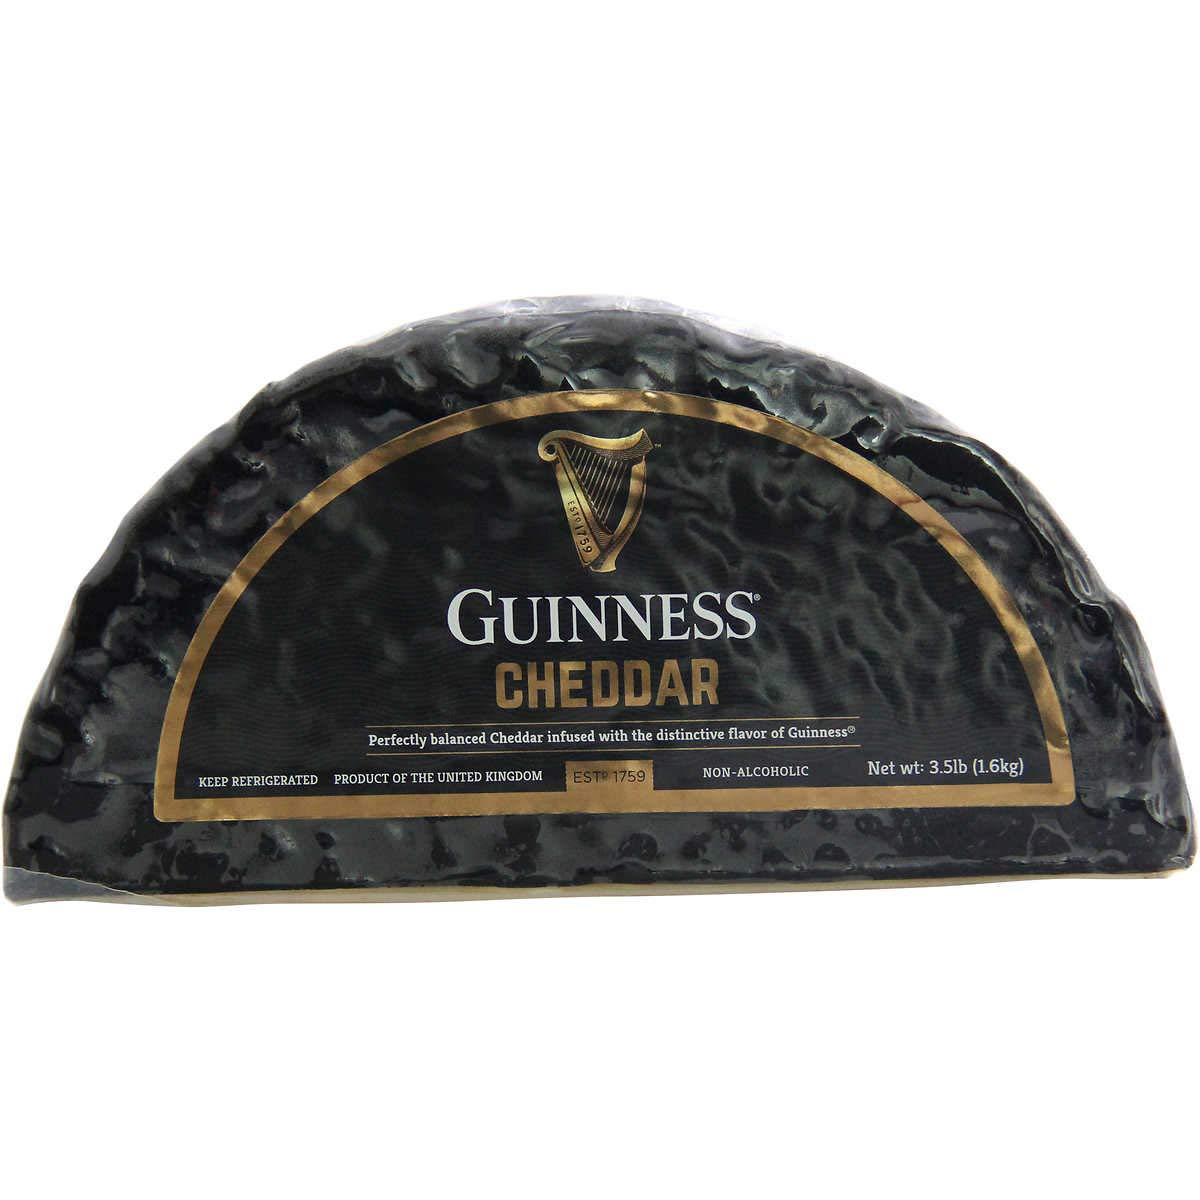 Guinness Cheddar Cheese, 3.5 lbs